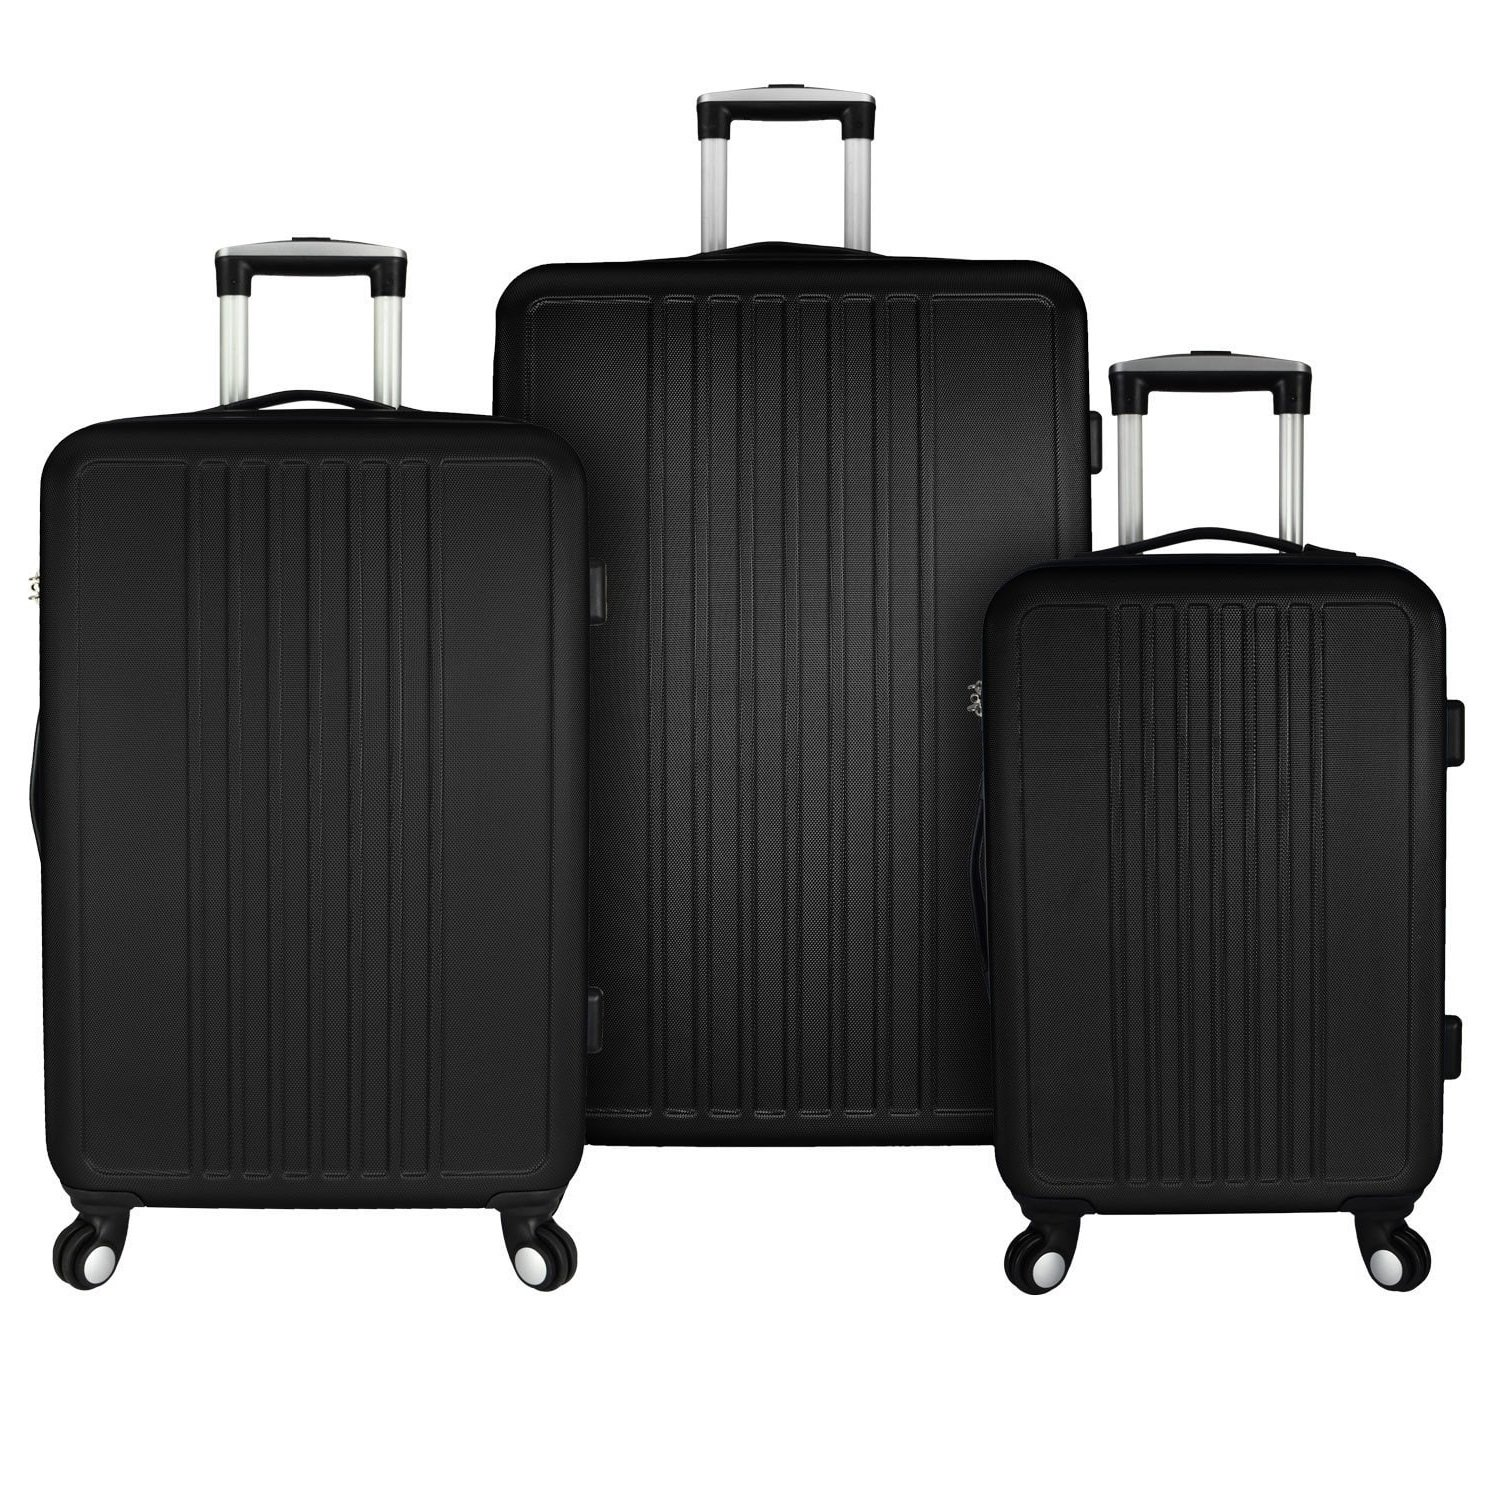 3 Piece Dark Geometric Stripes Motif Spinner Lightweight Expandable Carry On Luggage Set, Graphic Geo Vertical Lines Theme, Fashionable Hardsided Suitcases, Multi Compartment, Hard Travel Bags, Black by S & E